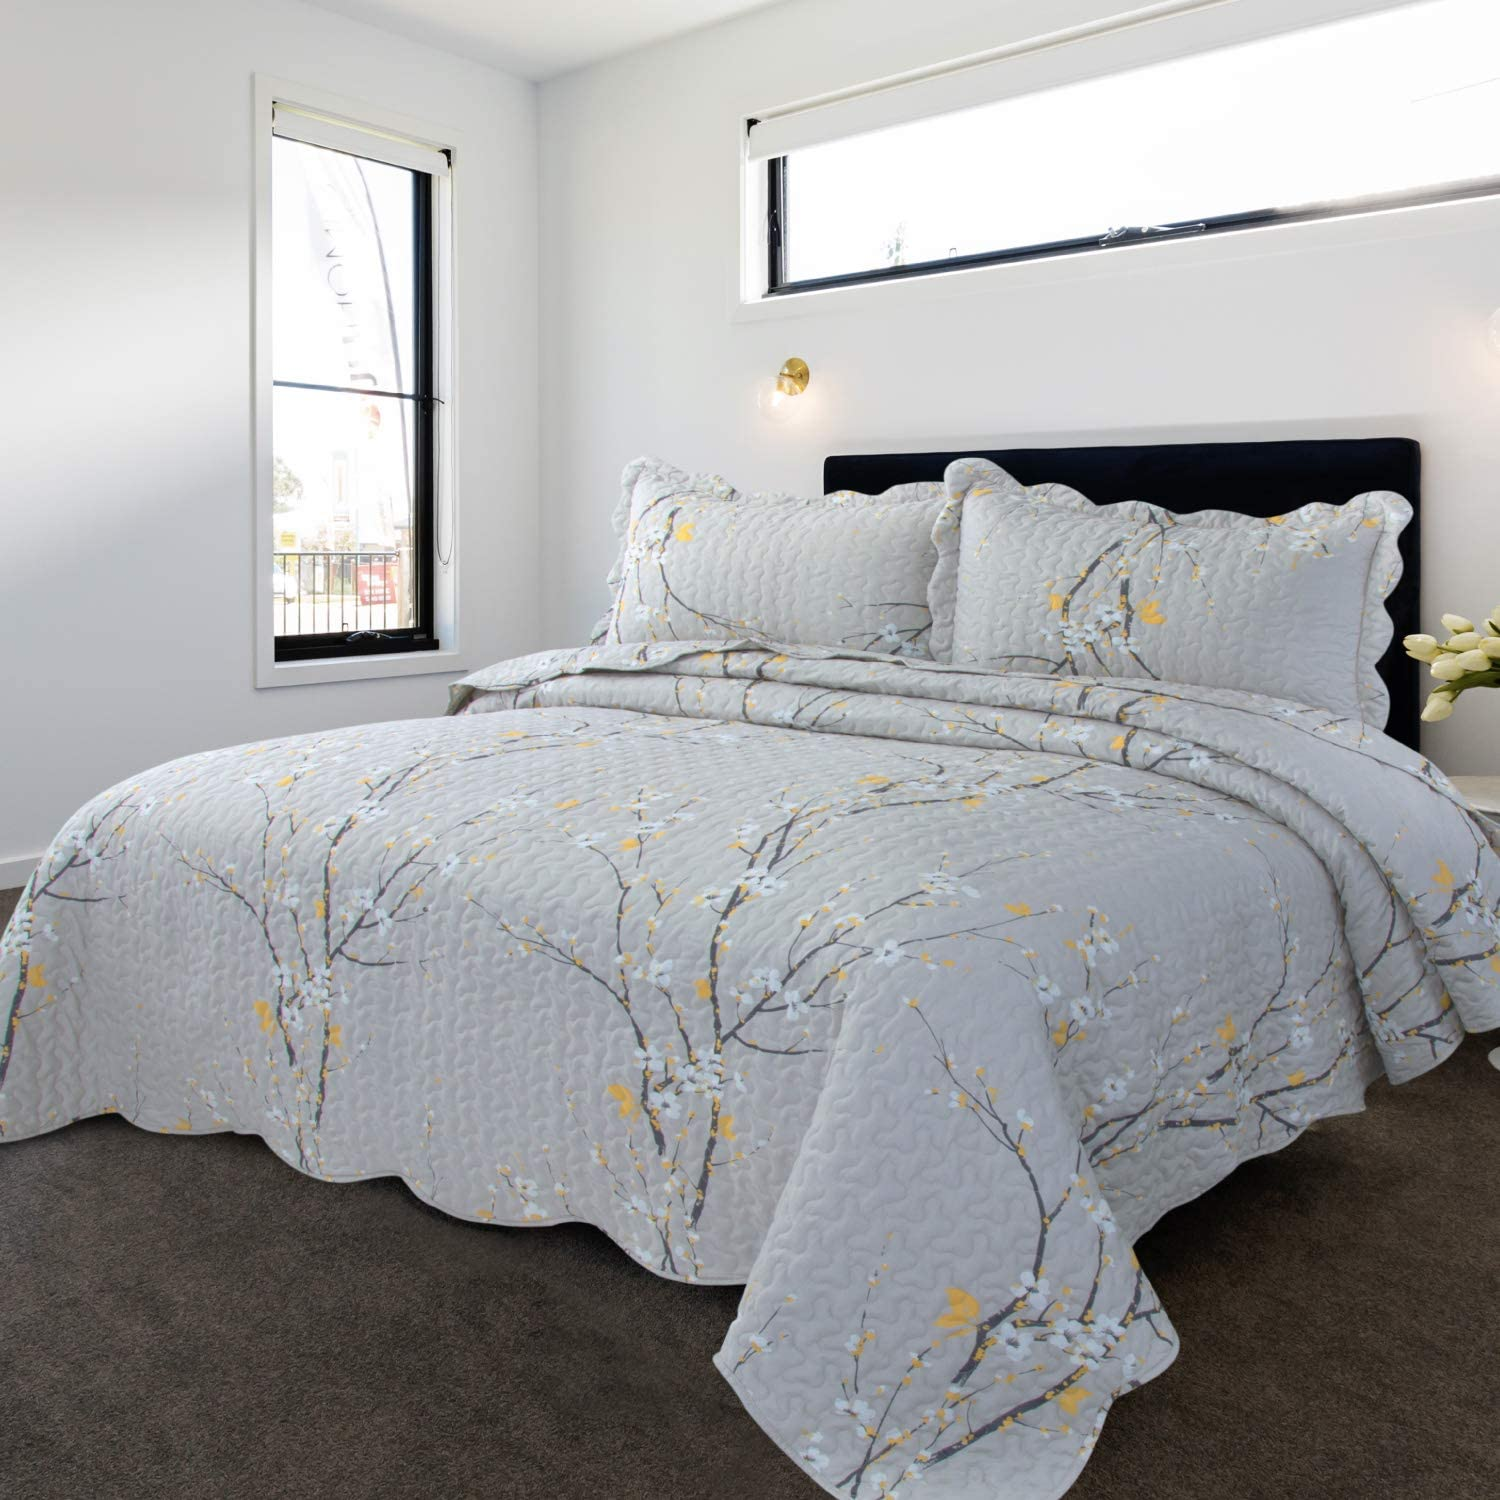 Bedsure Quilt Set Grey Queen Size Plum Blossom (90x96 inches) Bedspread, Lightweight Coverlet Quilt for Spring and Summer